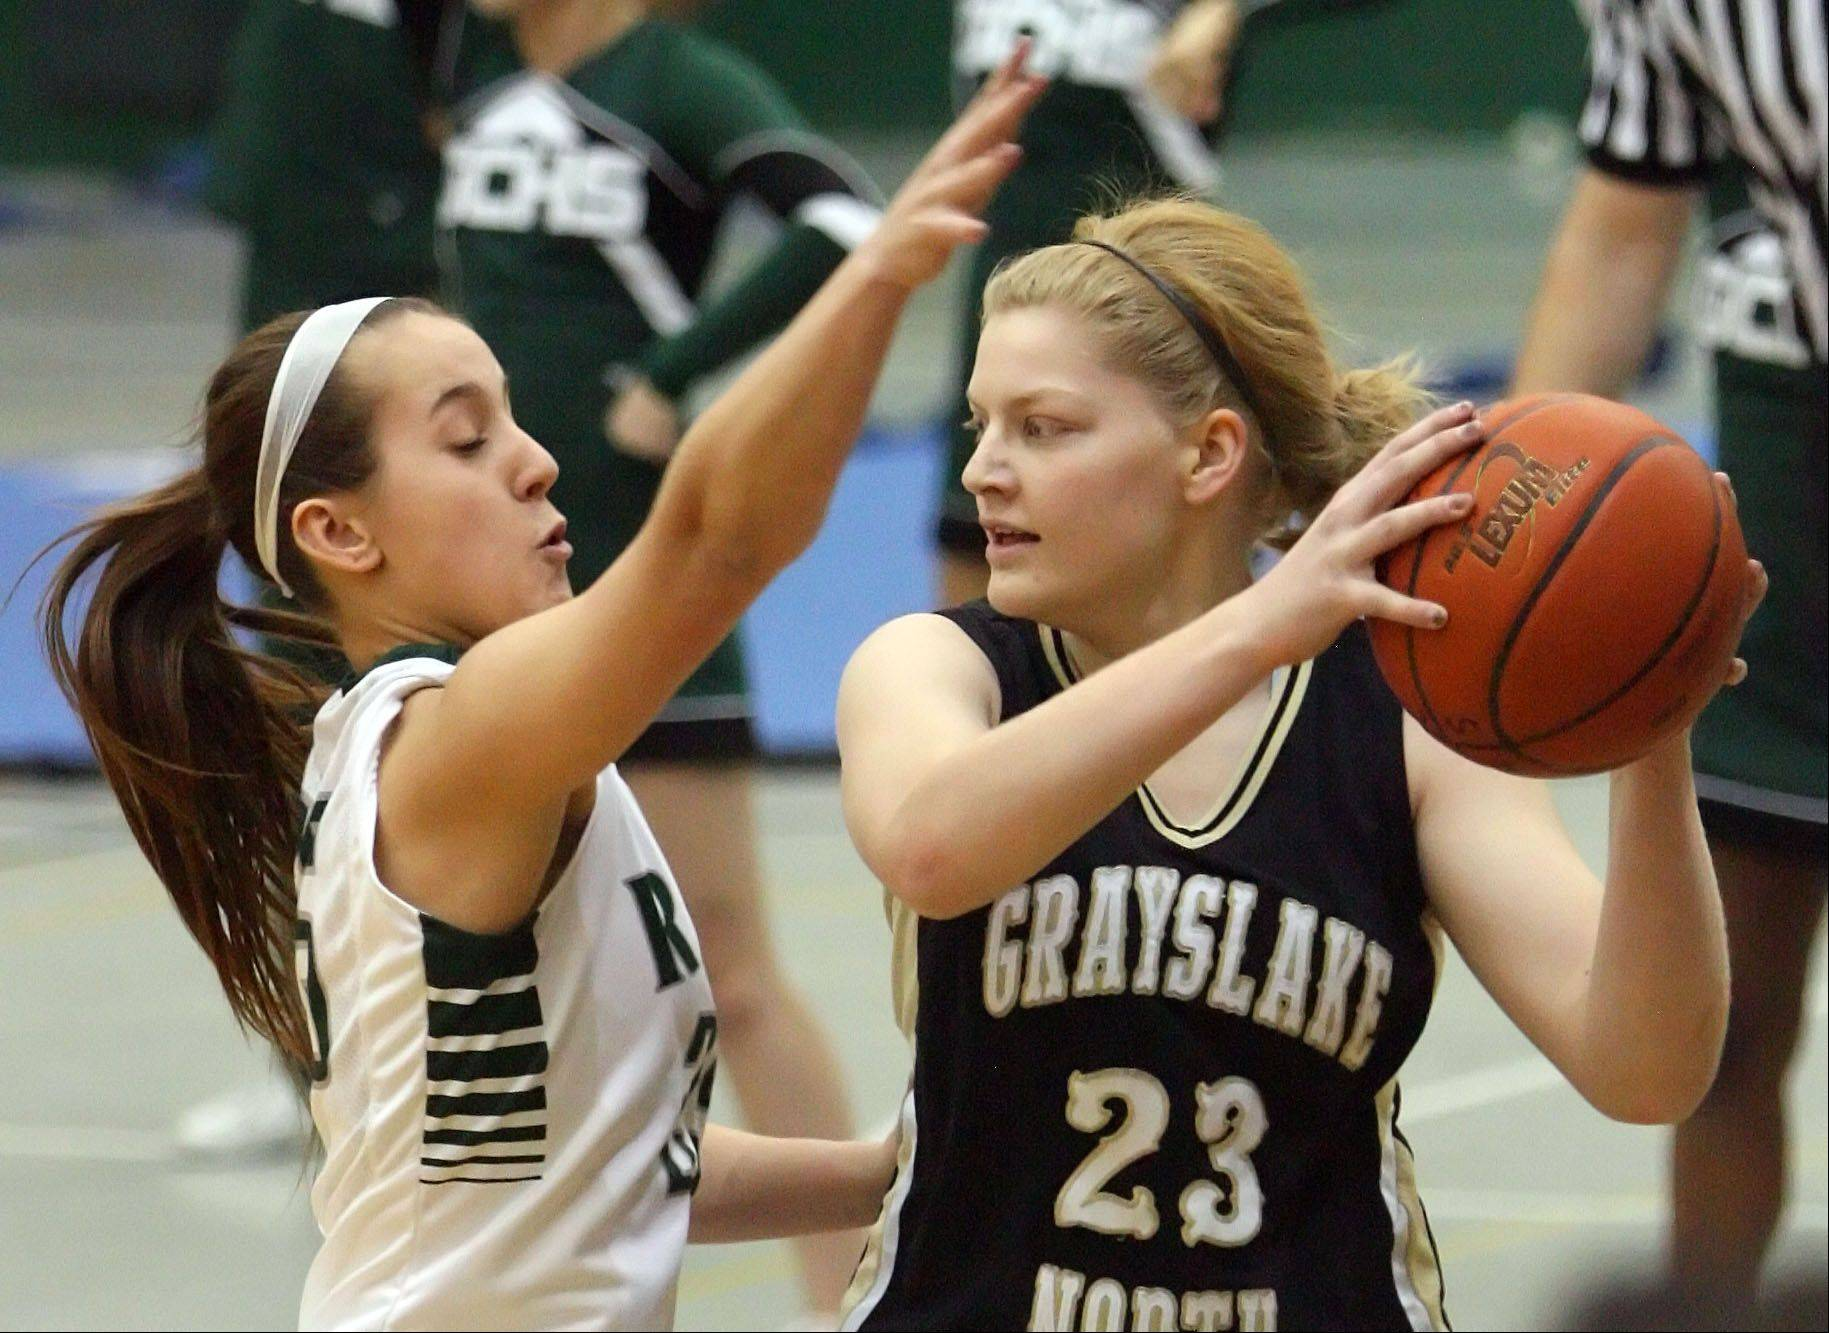 Grayslake Central's Taylor Peterson, left, ddefends against Grayslake North's Joanna Guhl.